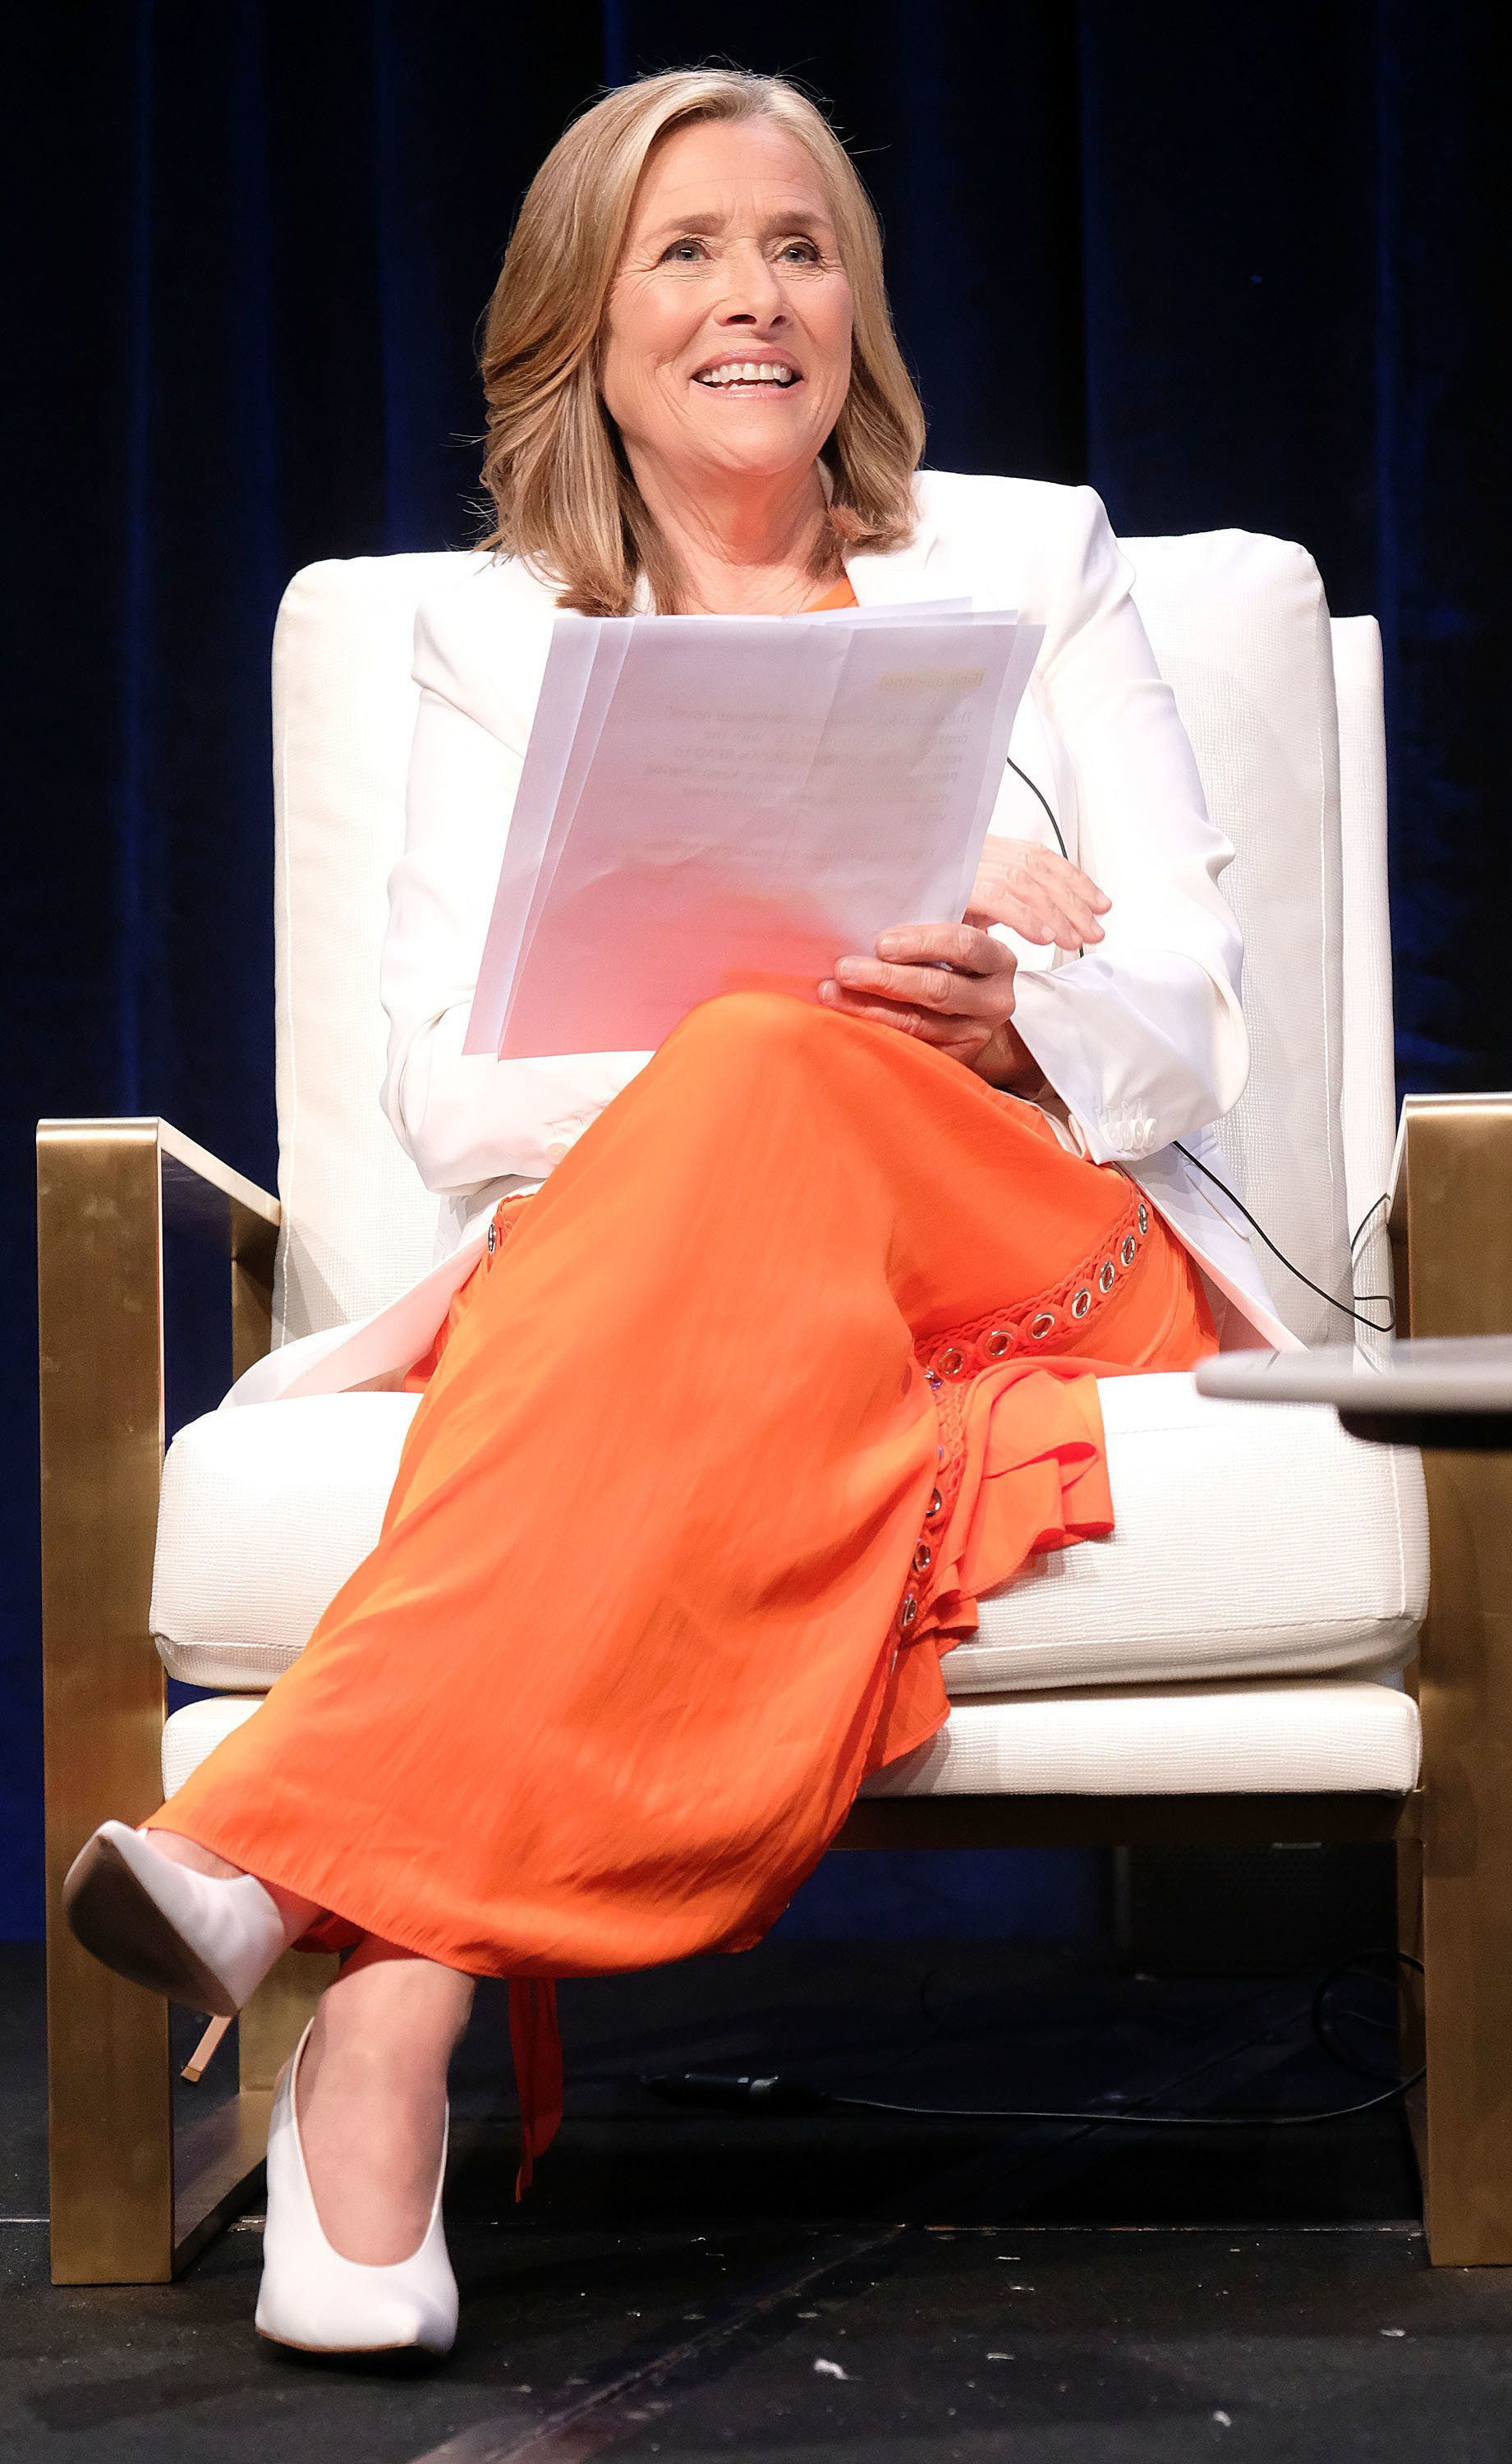 BEVERLY HILLS, CA - JULY 30: Meredith Vieira of the television show 'Great American Read' speaks during the PBS segment of the Summer 2018 Television Critics Association Press Tour at the Beverly Hilton Hotel on July 30, 2018 in Beverly Hills, California.  (Photo by Frederick M. Brown/Getty Images)